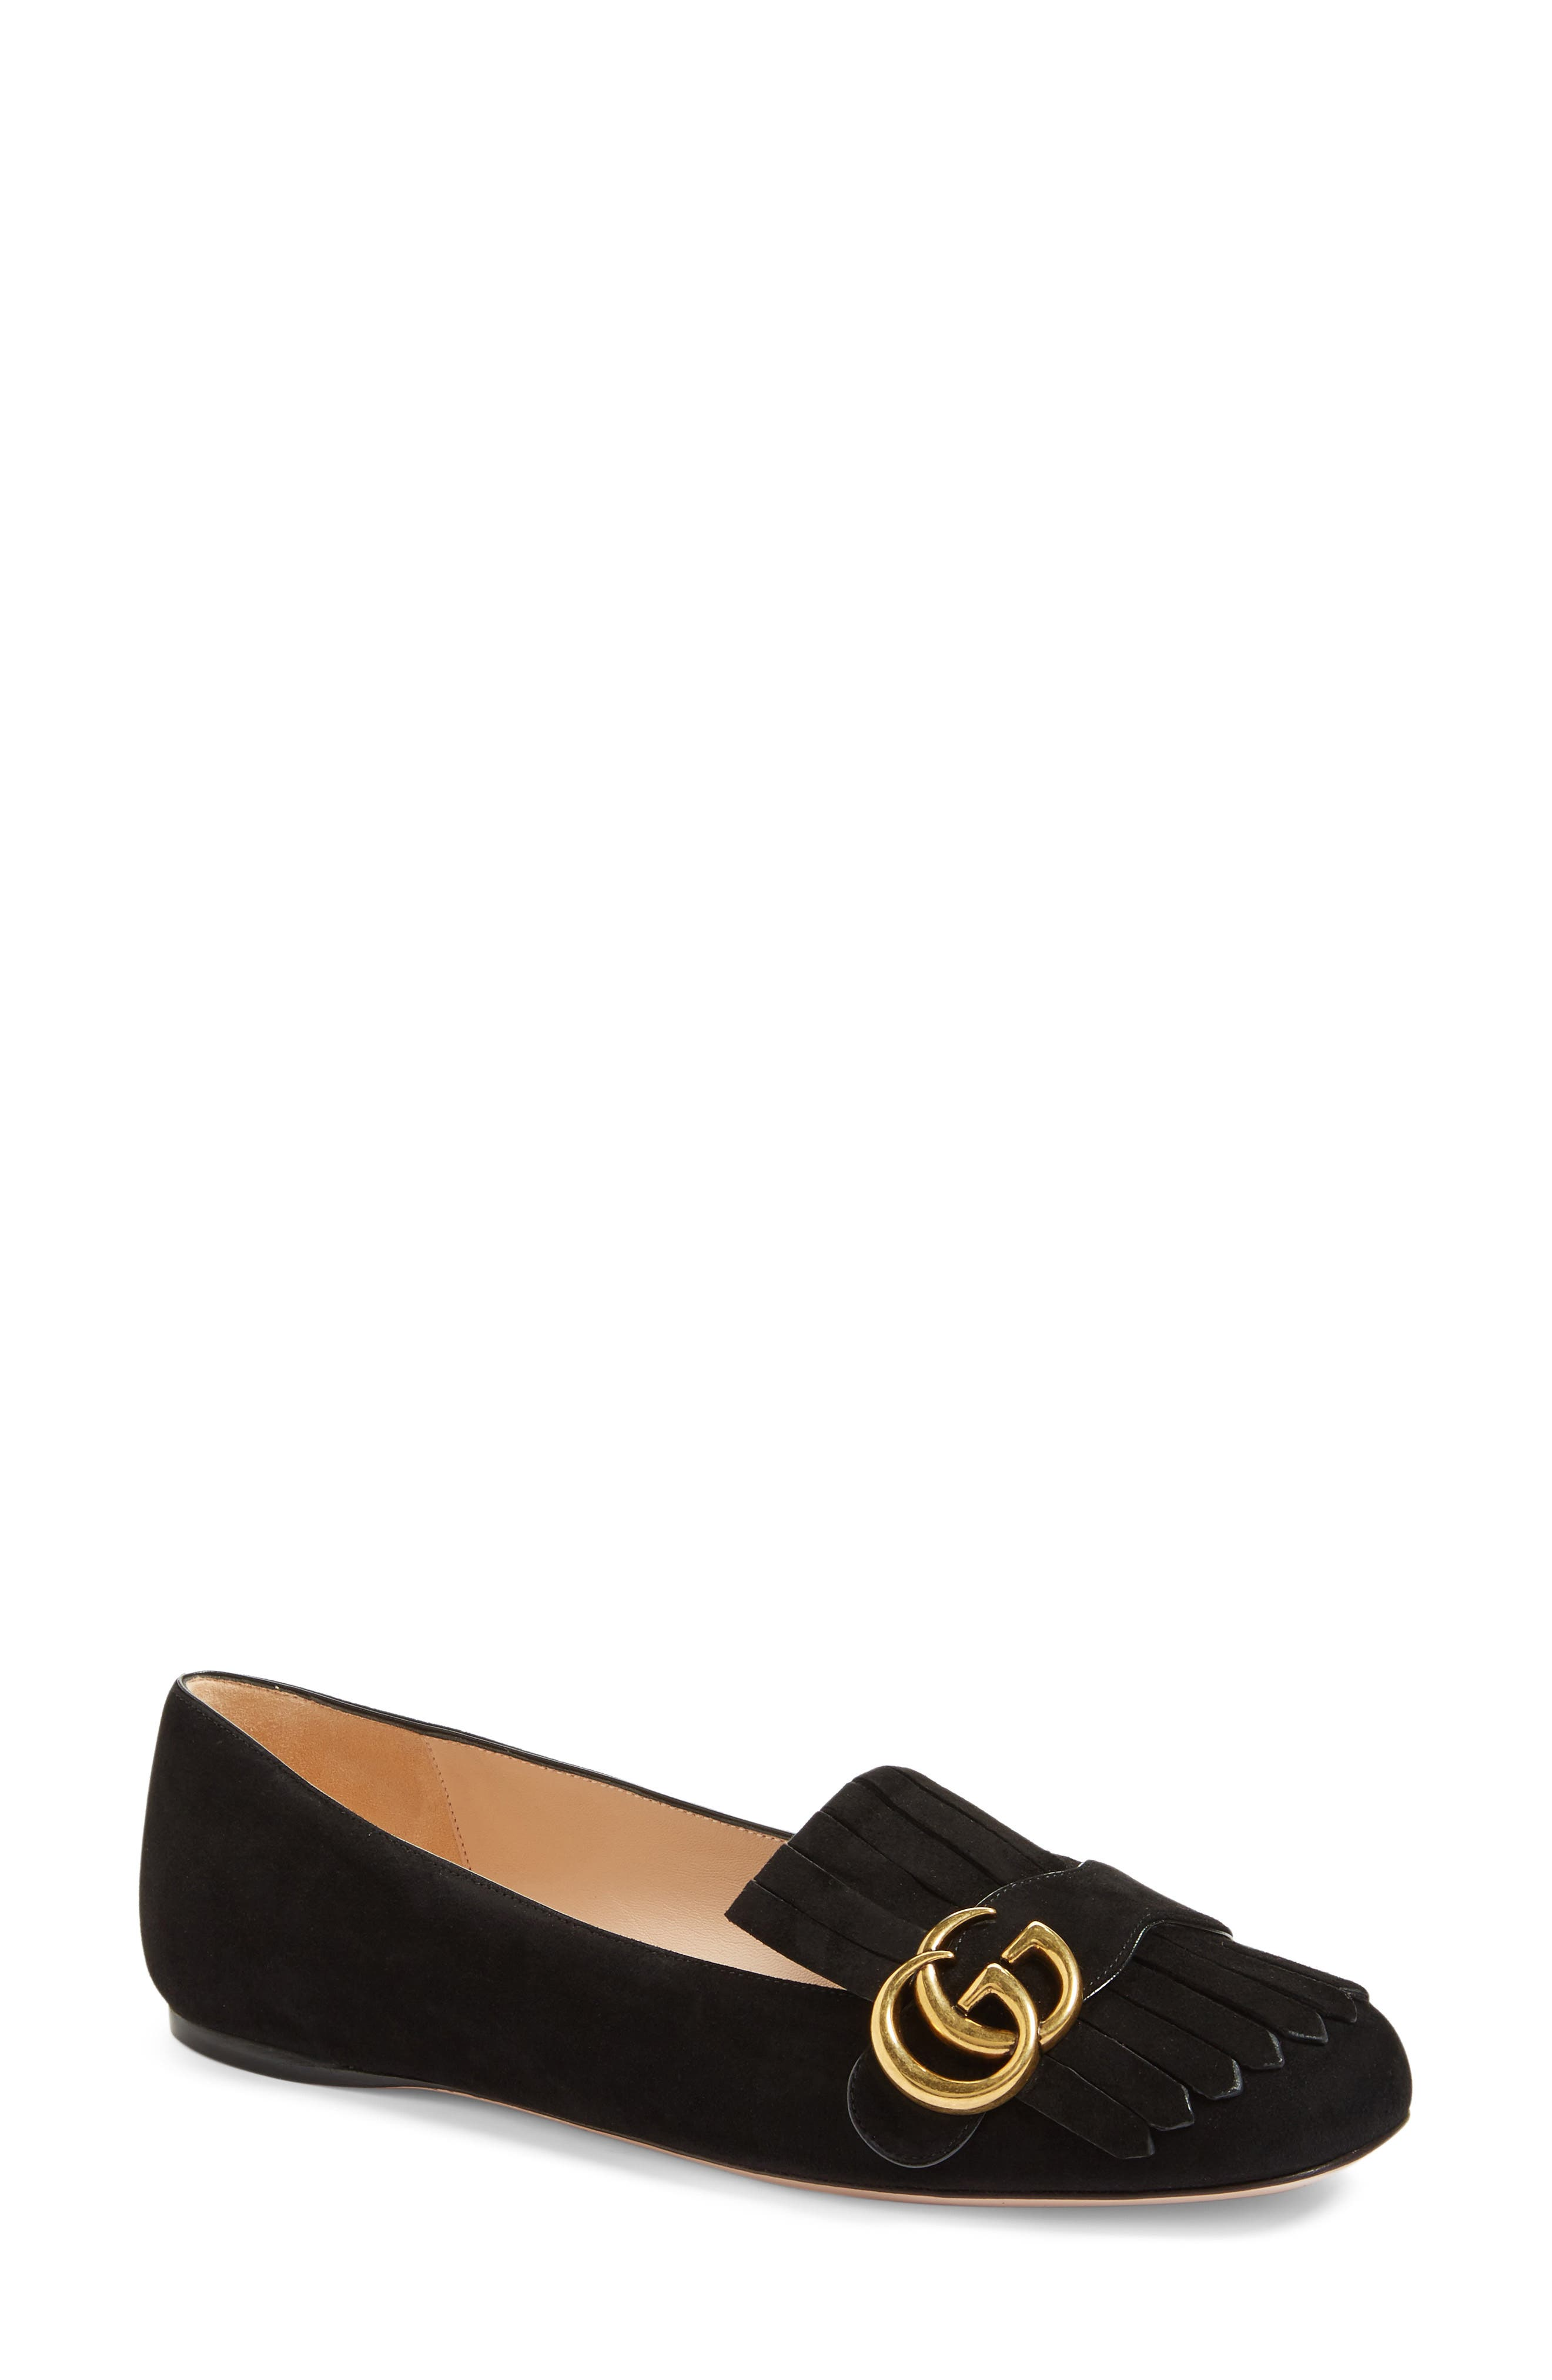 GUCCI, GG Marmont Fringe Flat, Main thumbnail 1, color, BLACK SUEDE